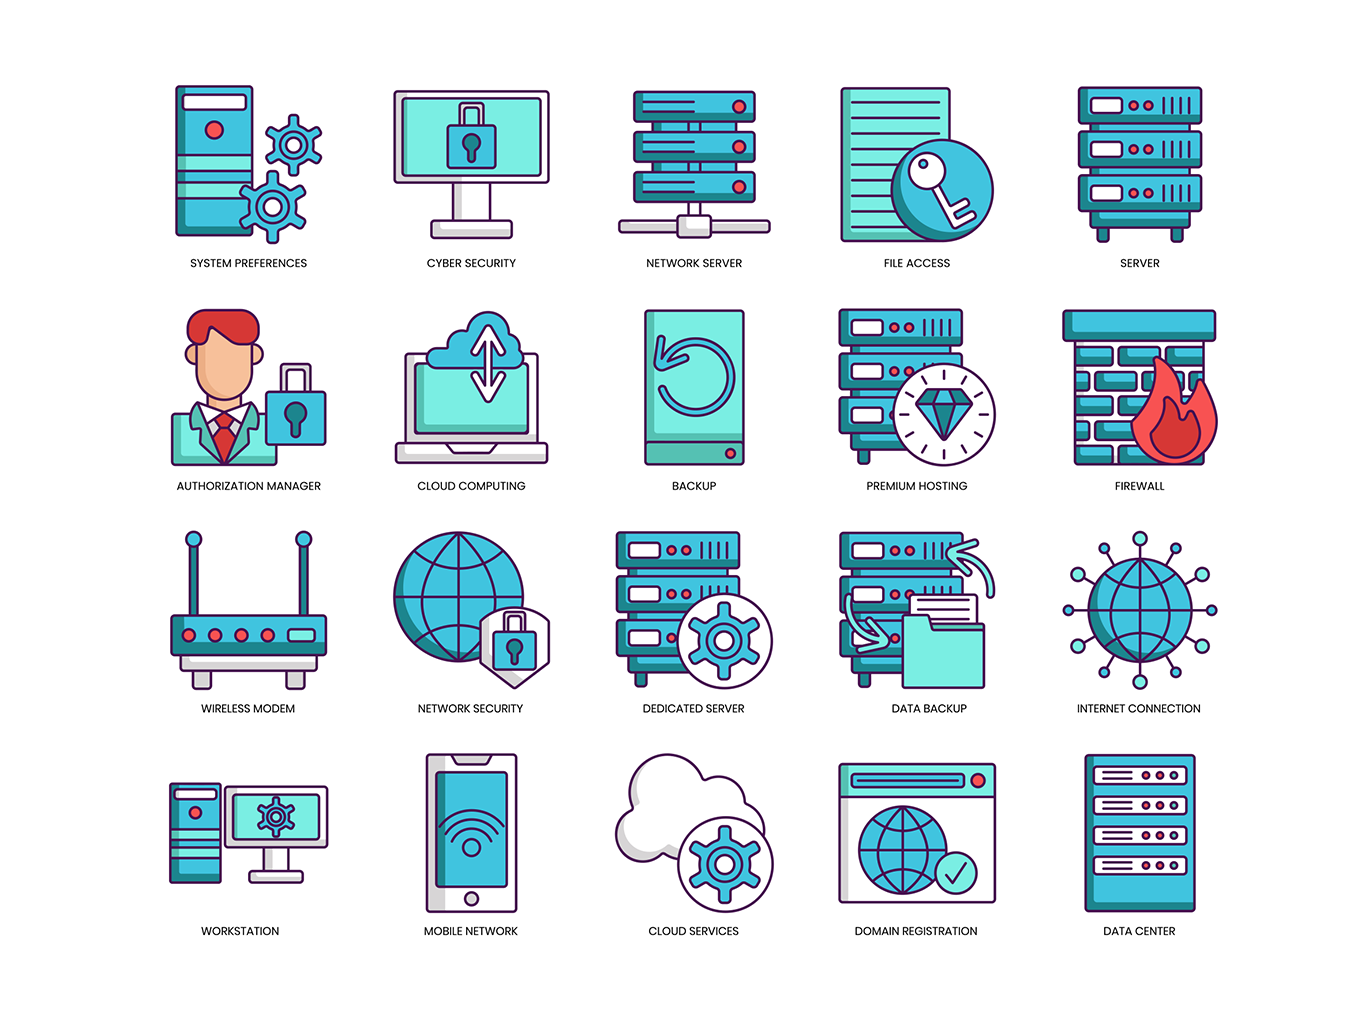 web_hosting_icons_ui8_detail_image_7_1540817411564.png